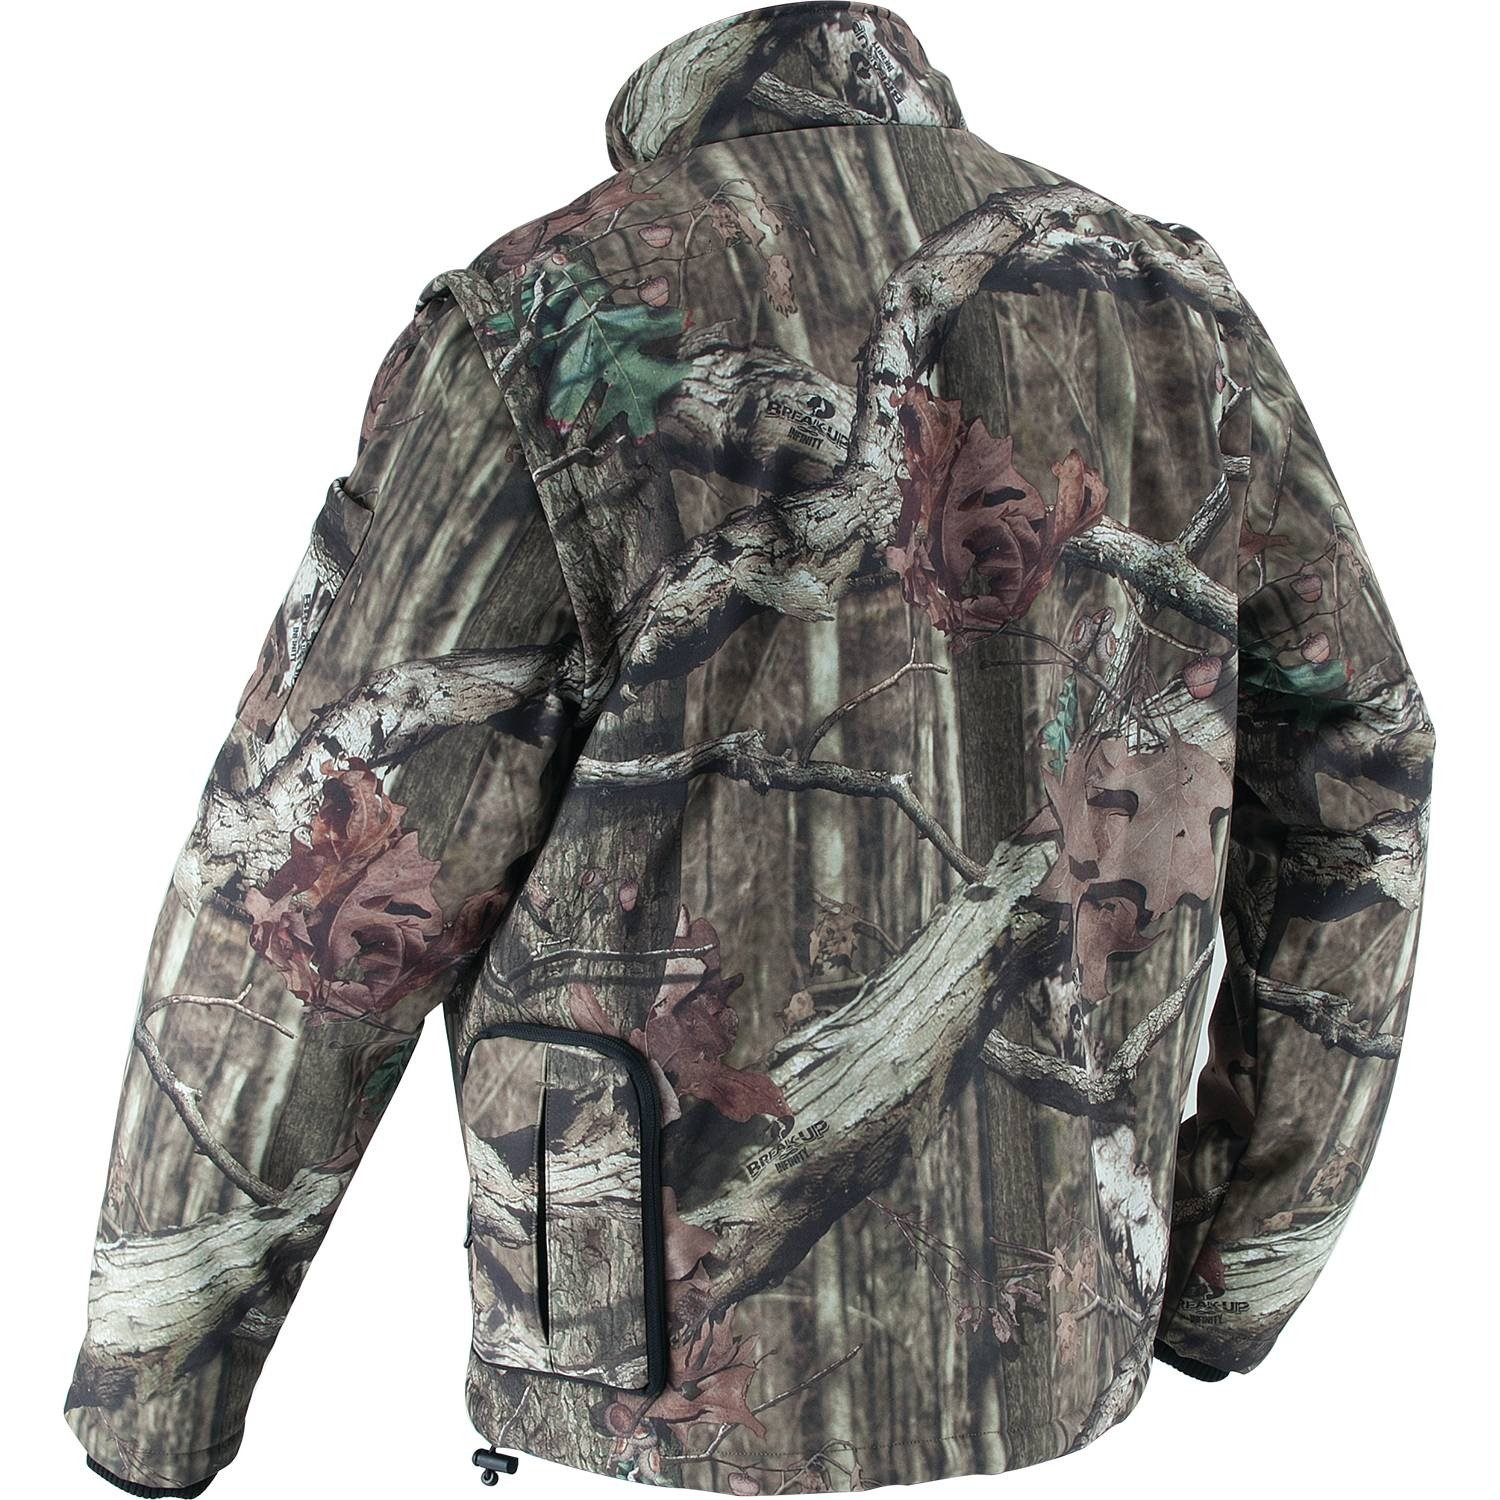 866e7c9dc0f61 Makita DCJ201ZXL 18V LXT Lithium-Ion Cordless Mossy Oak Heated Jacket,  Camo, X-Large - - Amazon.com